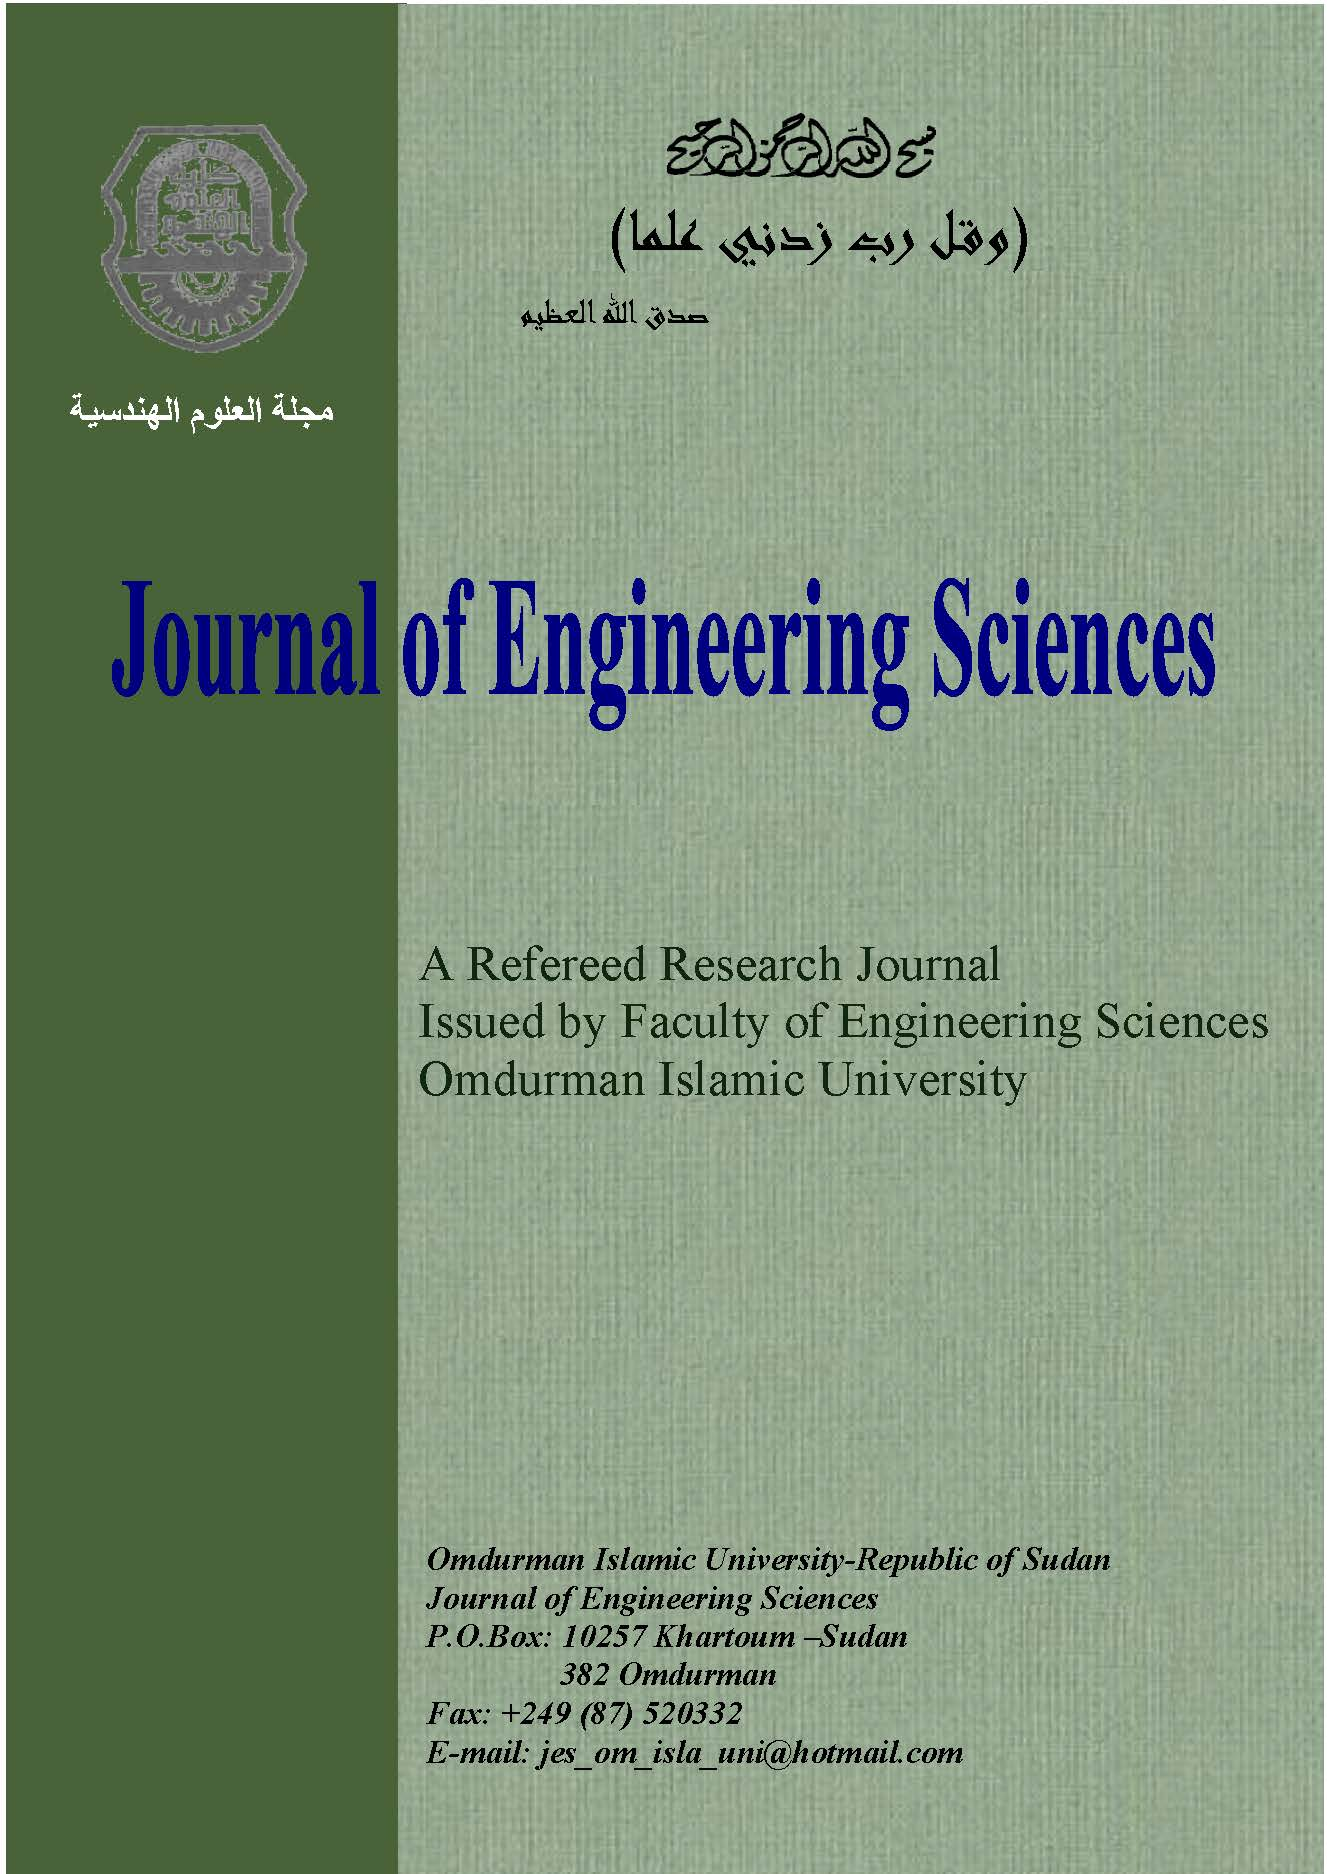 Design Fabrication And Testing Of Thermistor Detector Fes Journal Of Engineering Sciences